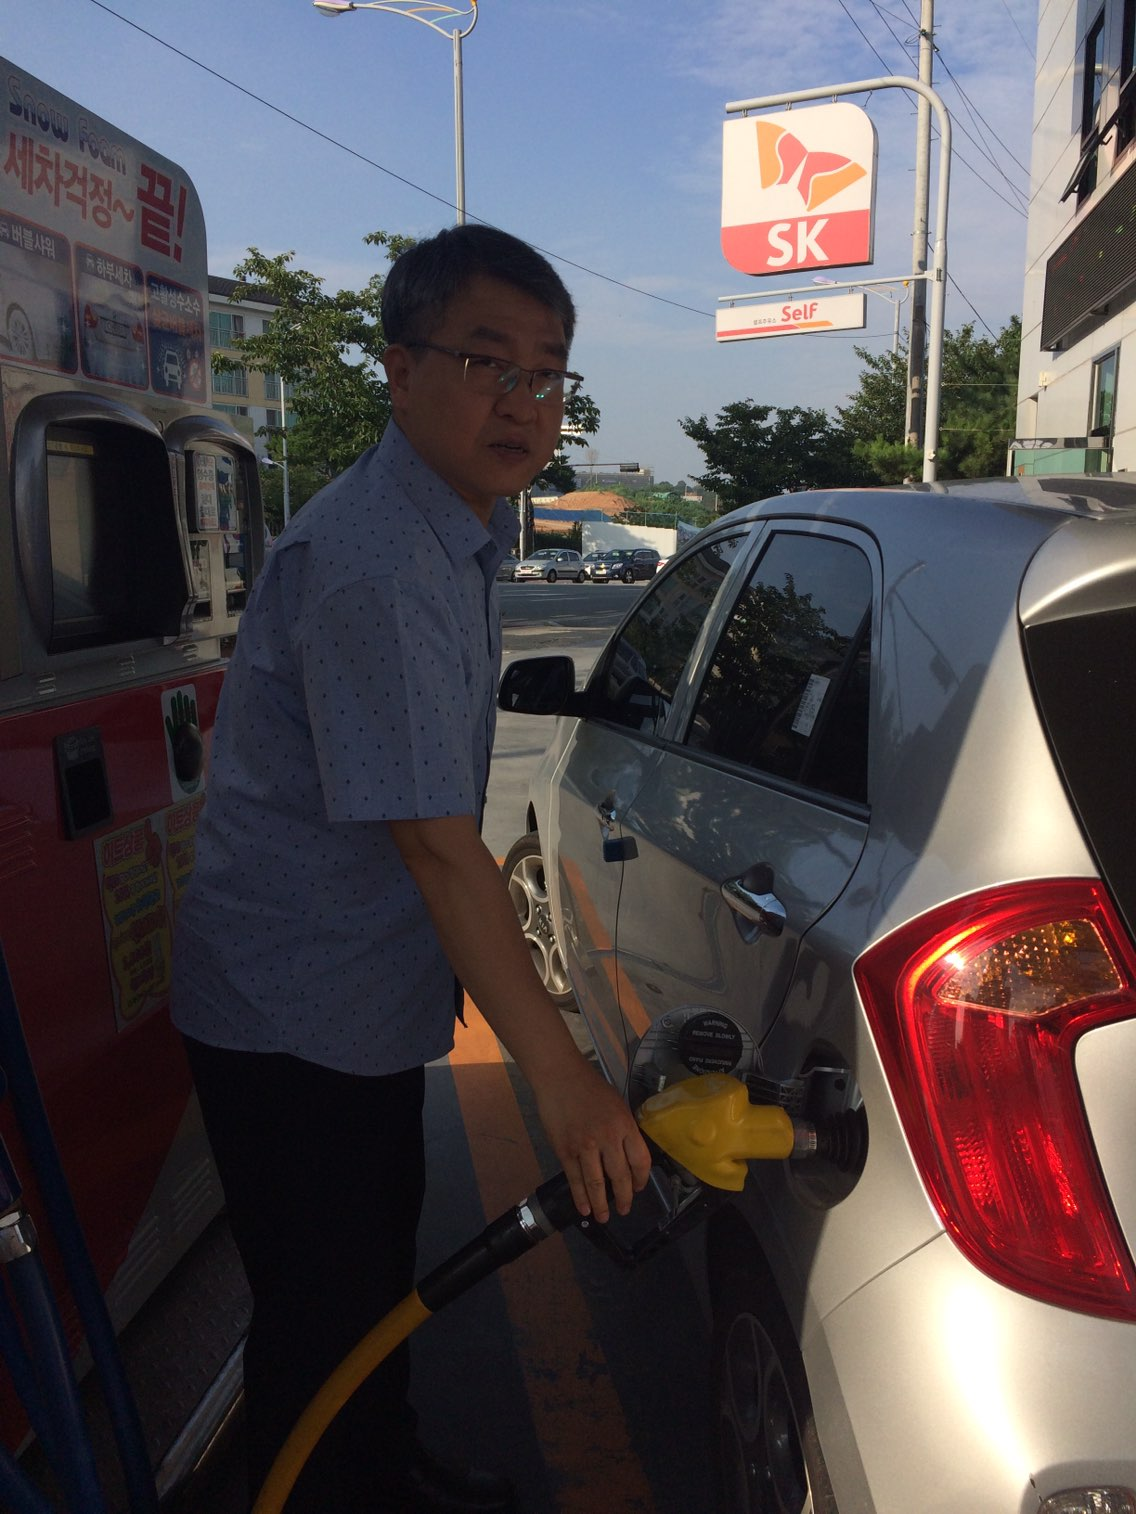 Refueling Cars In South Korea Comes At A Cost Spartan